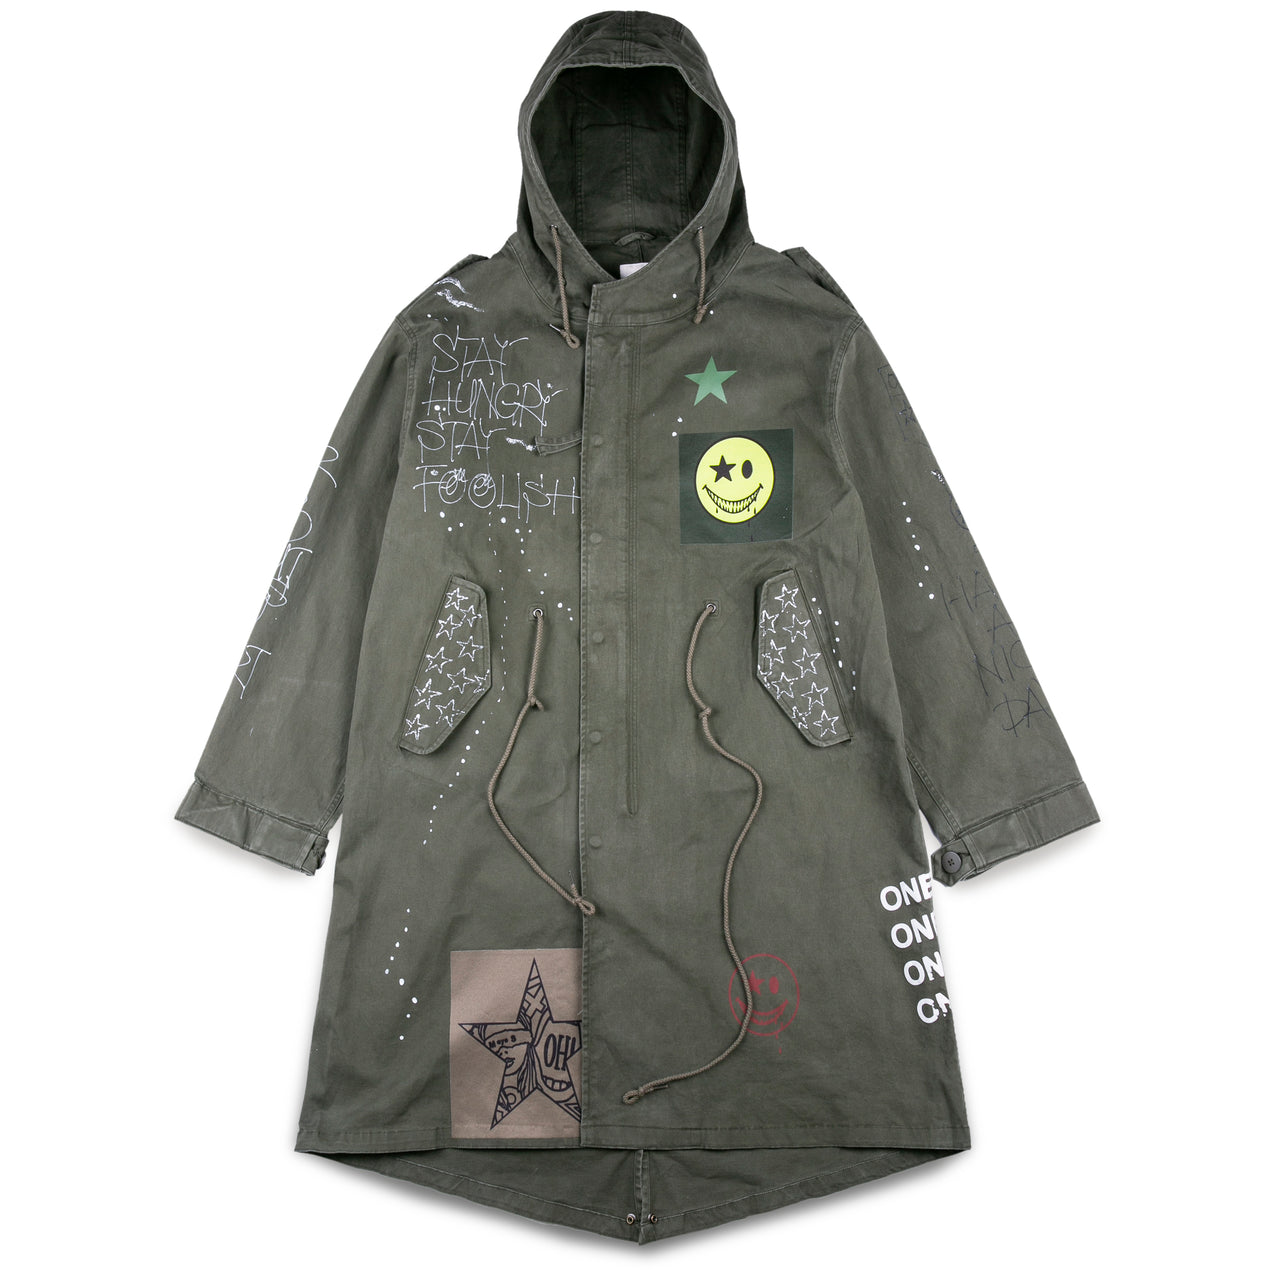 New Studio Graffiti Print Hooded Parka